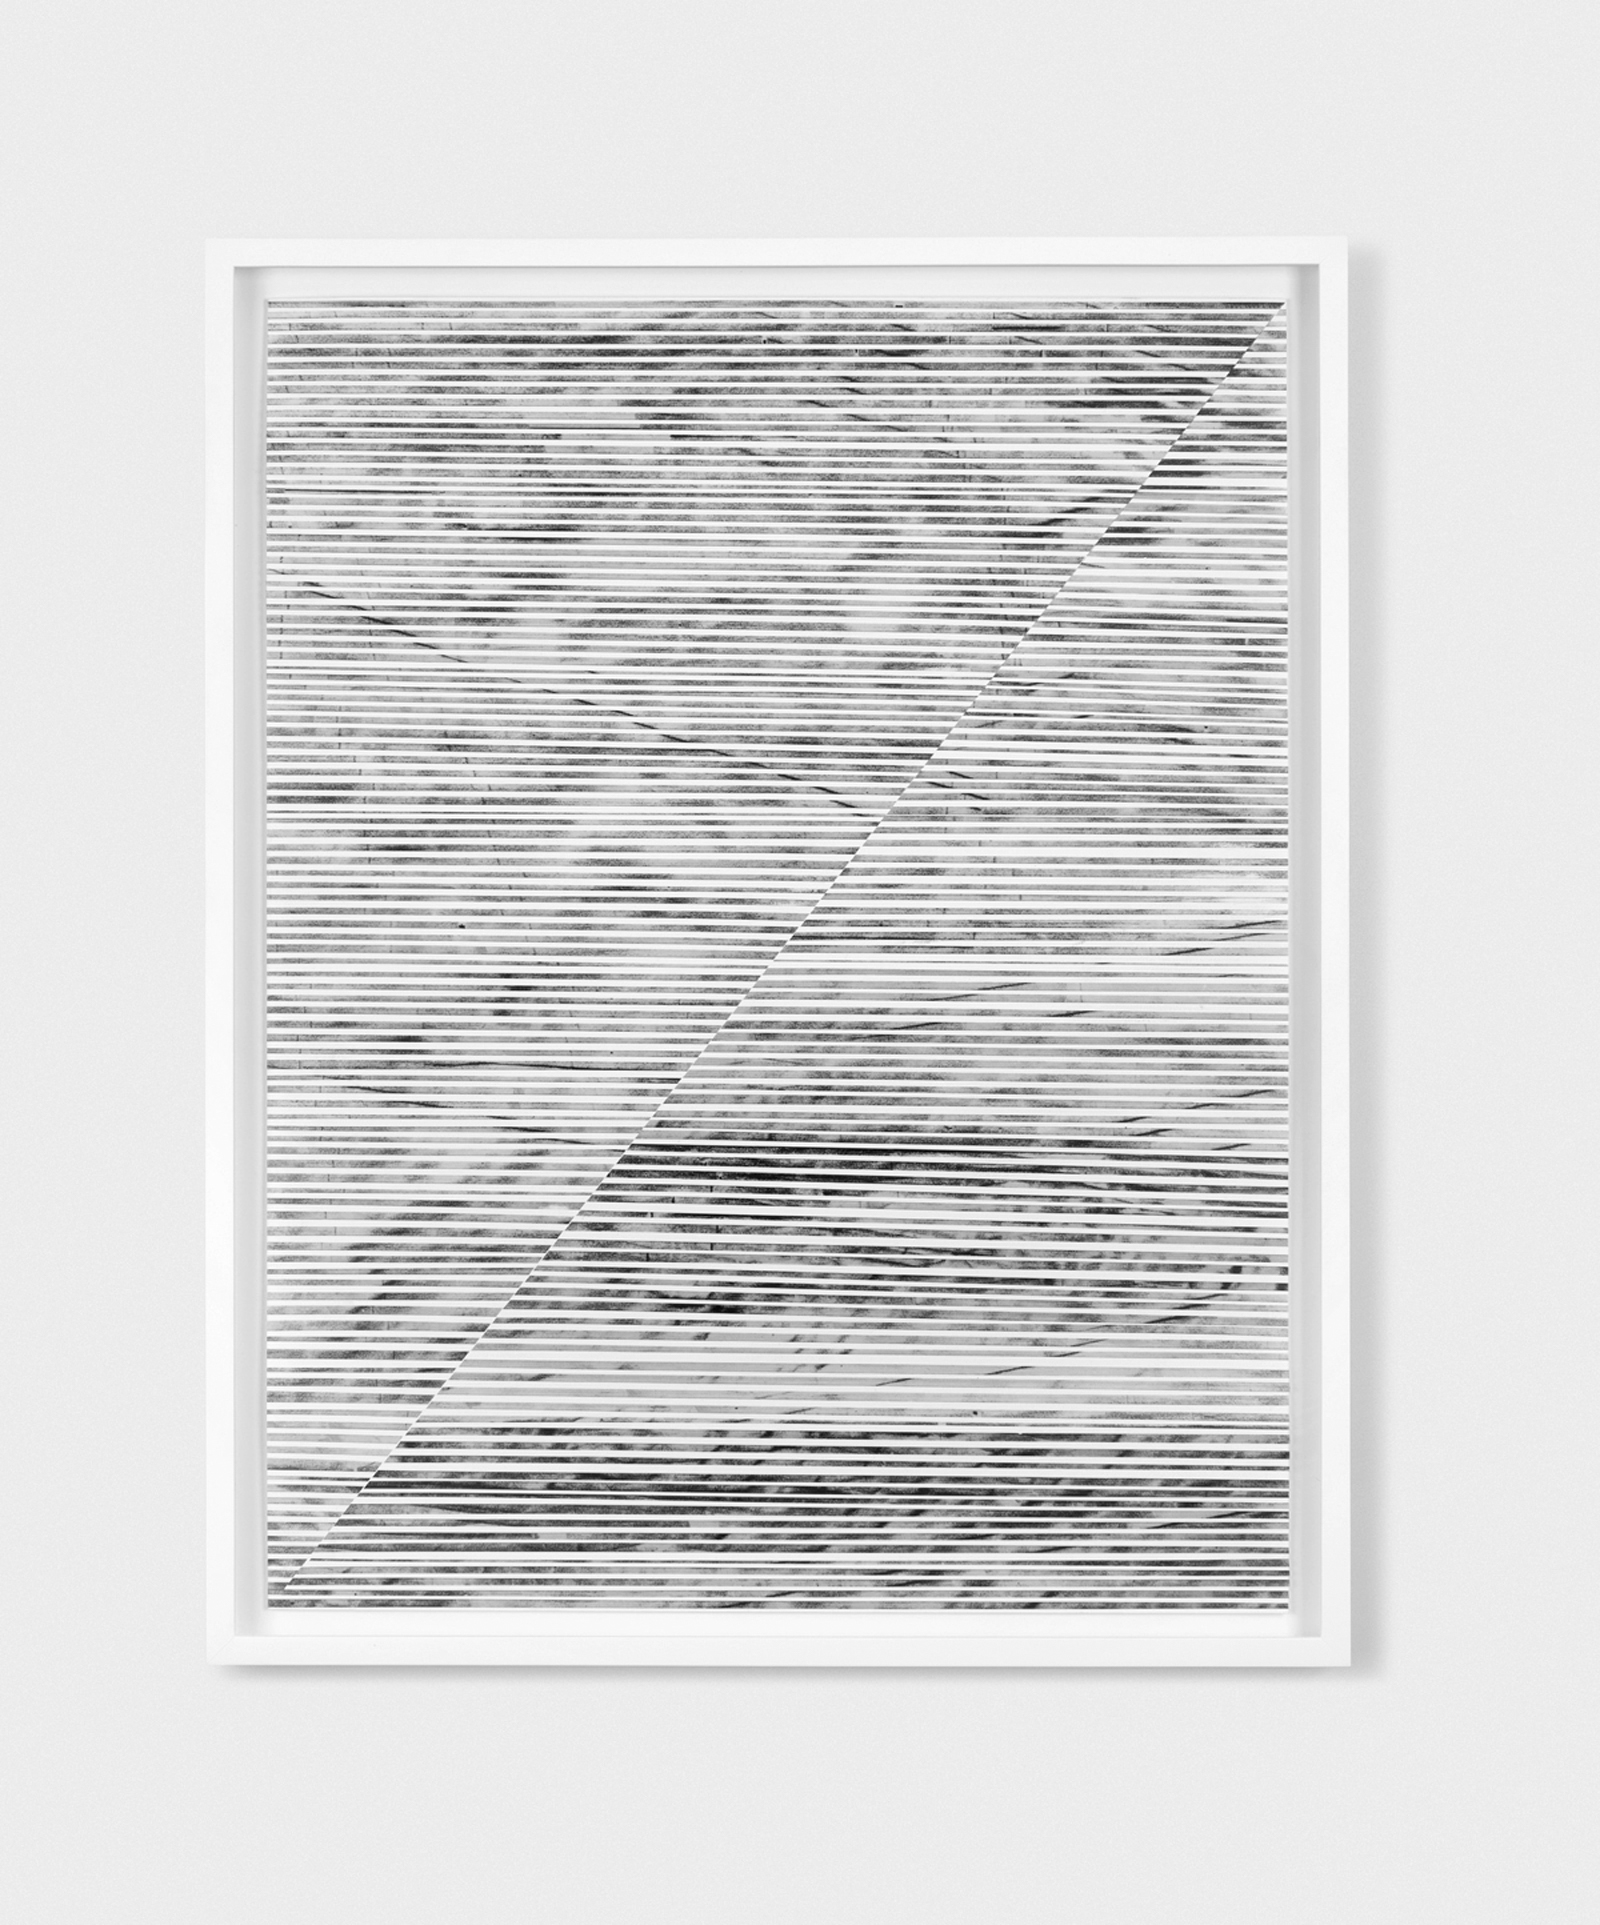 "Jim Verburg,  Untitled (the line between #1),  2014, charcoal and powdered graphite on translucent tape, cut and arranged on cotton paper, 28"" x 22"" (71 x 56 cm)"